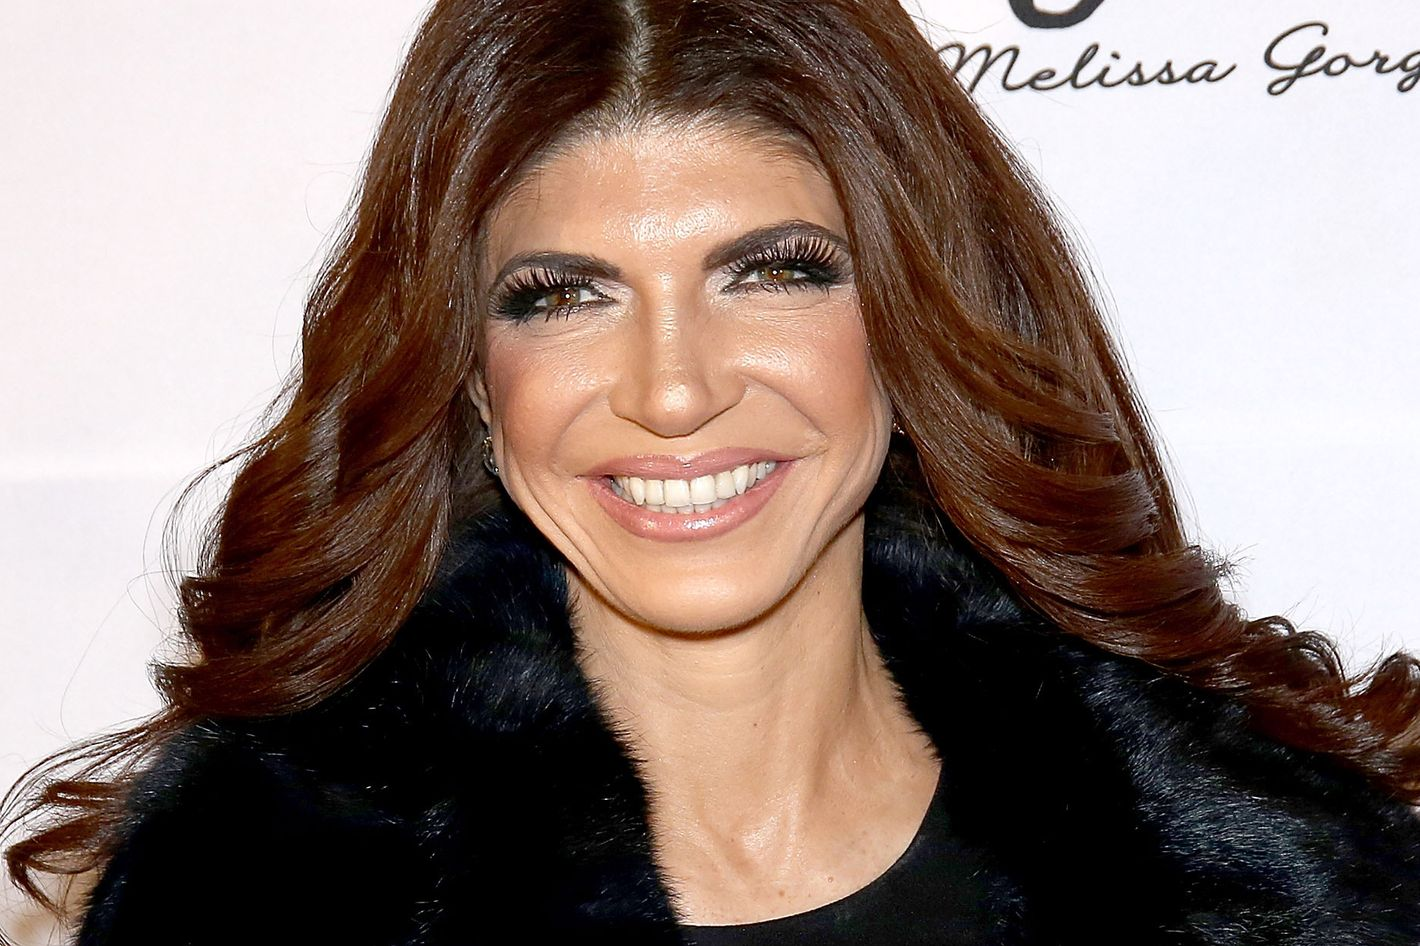 Guy in jail gets fucked bycell mate Cellmate Sex Prison Cosmetics Tv Fights And Other Highlights From Teresa Giudice S Prison Memoir Turning The Tables